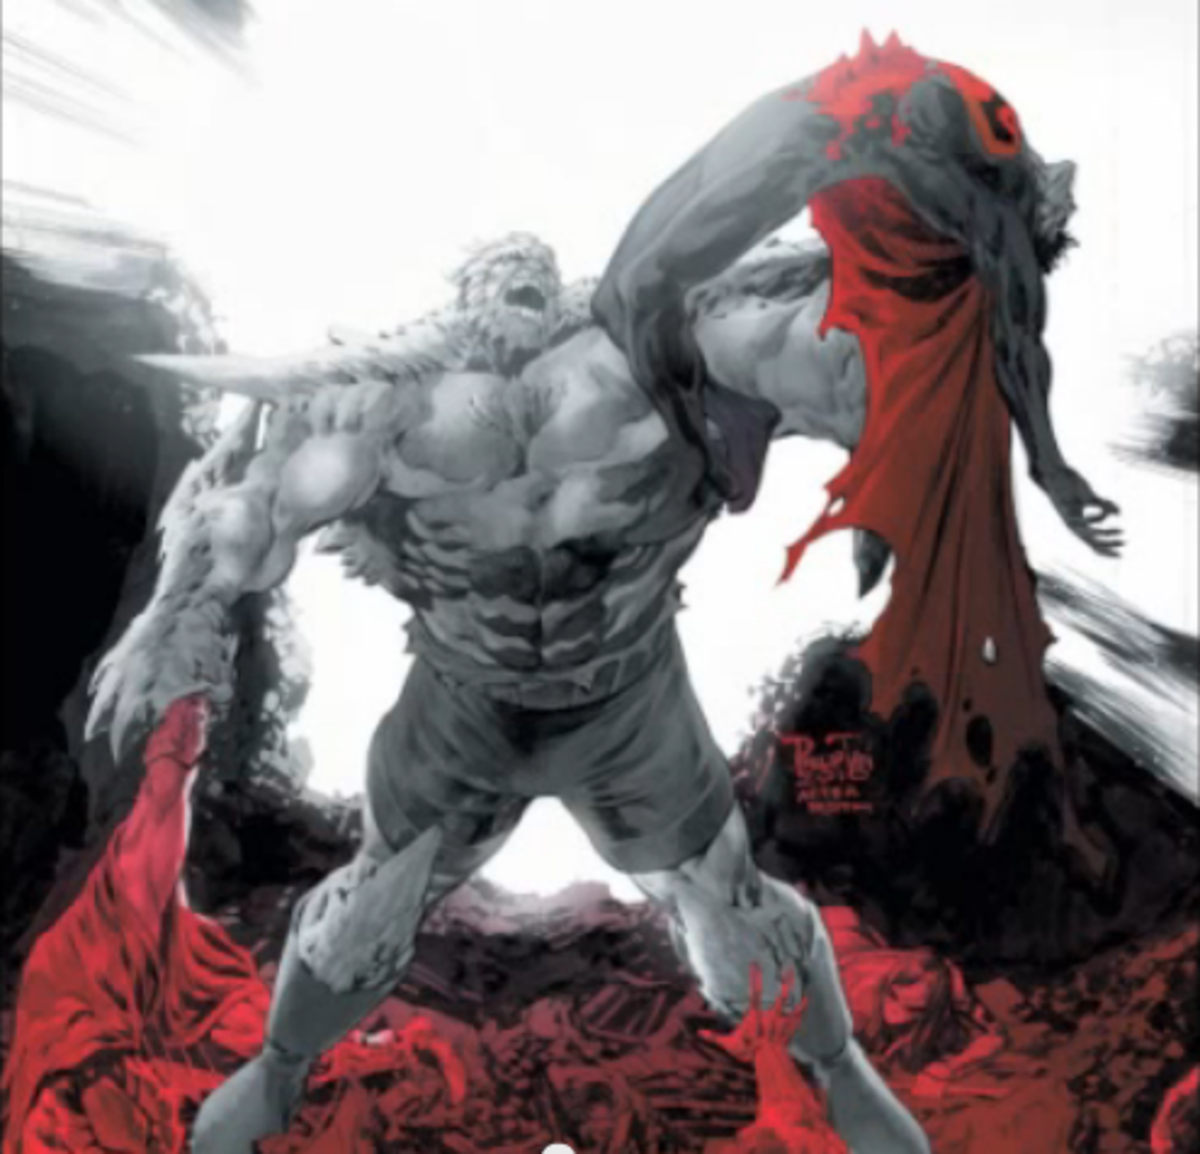 Sorry Marvel Hulk fans...but he doesn't stand a chance against Doomsday.